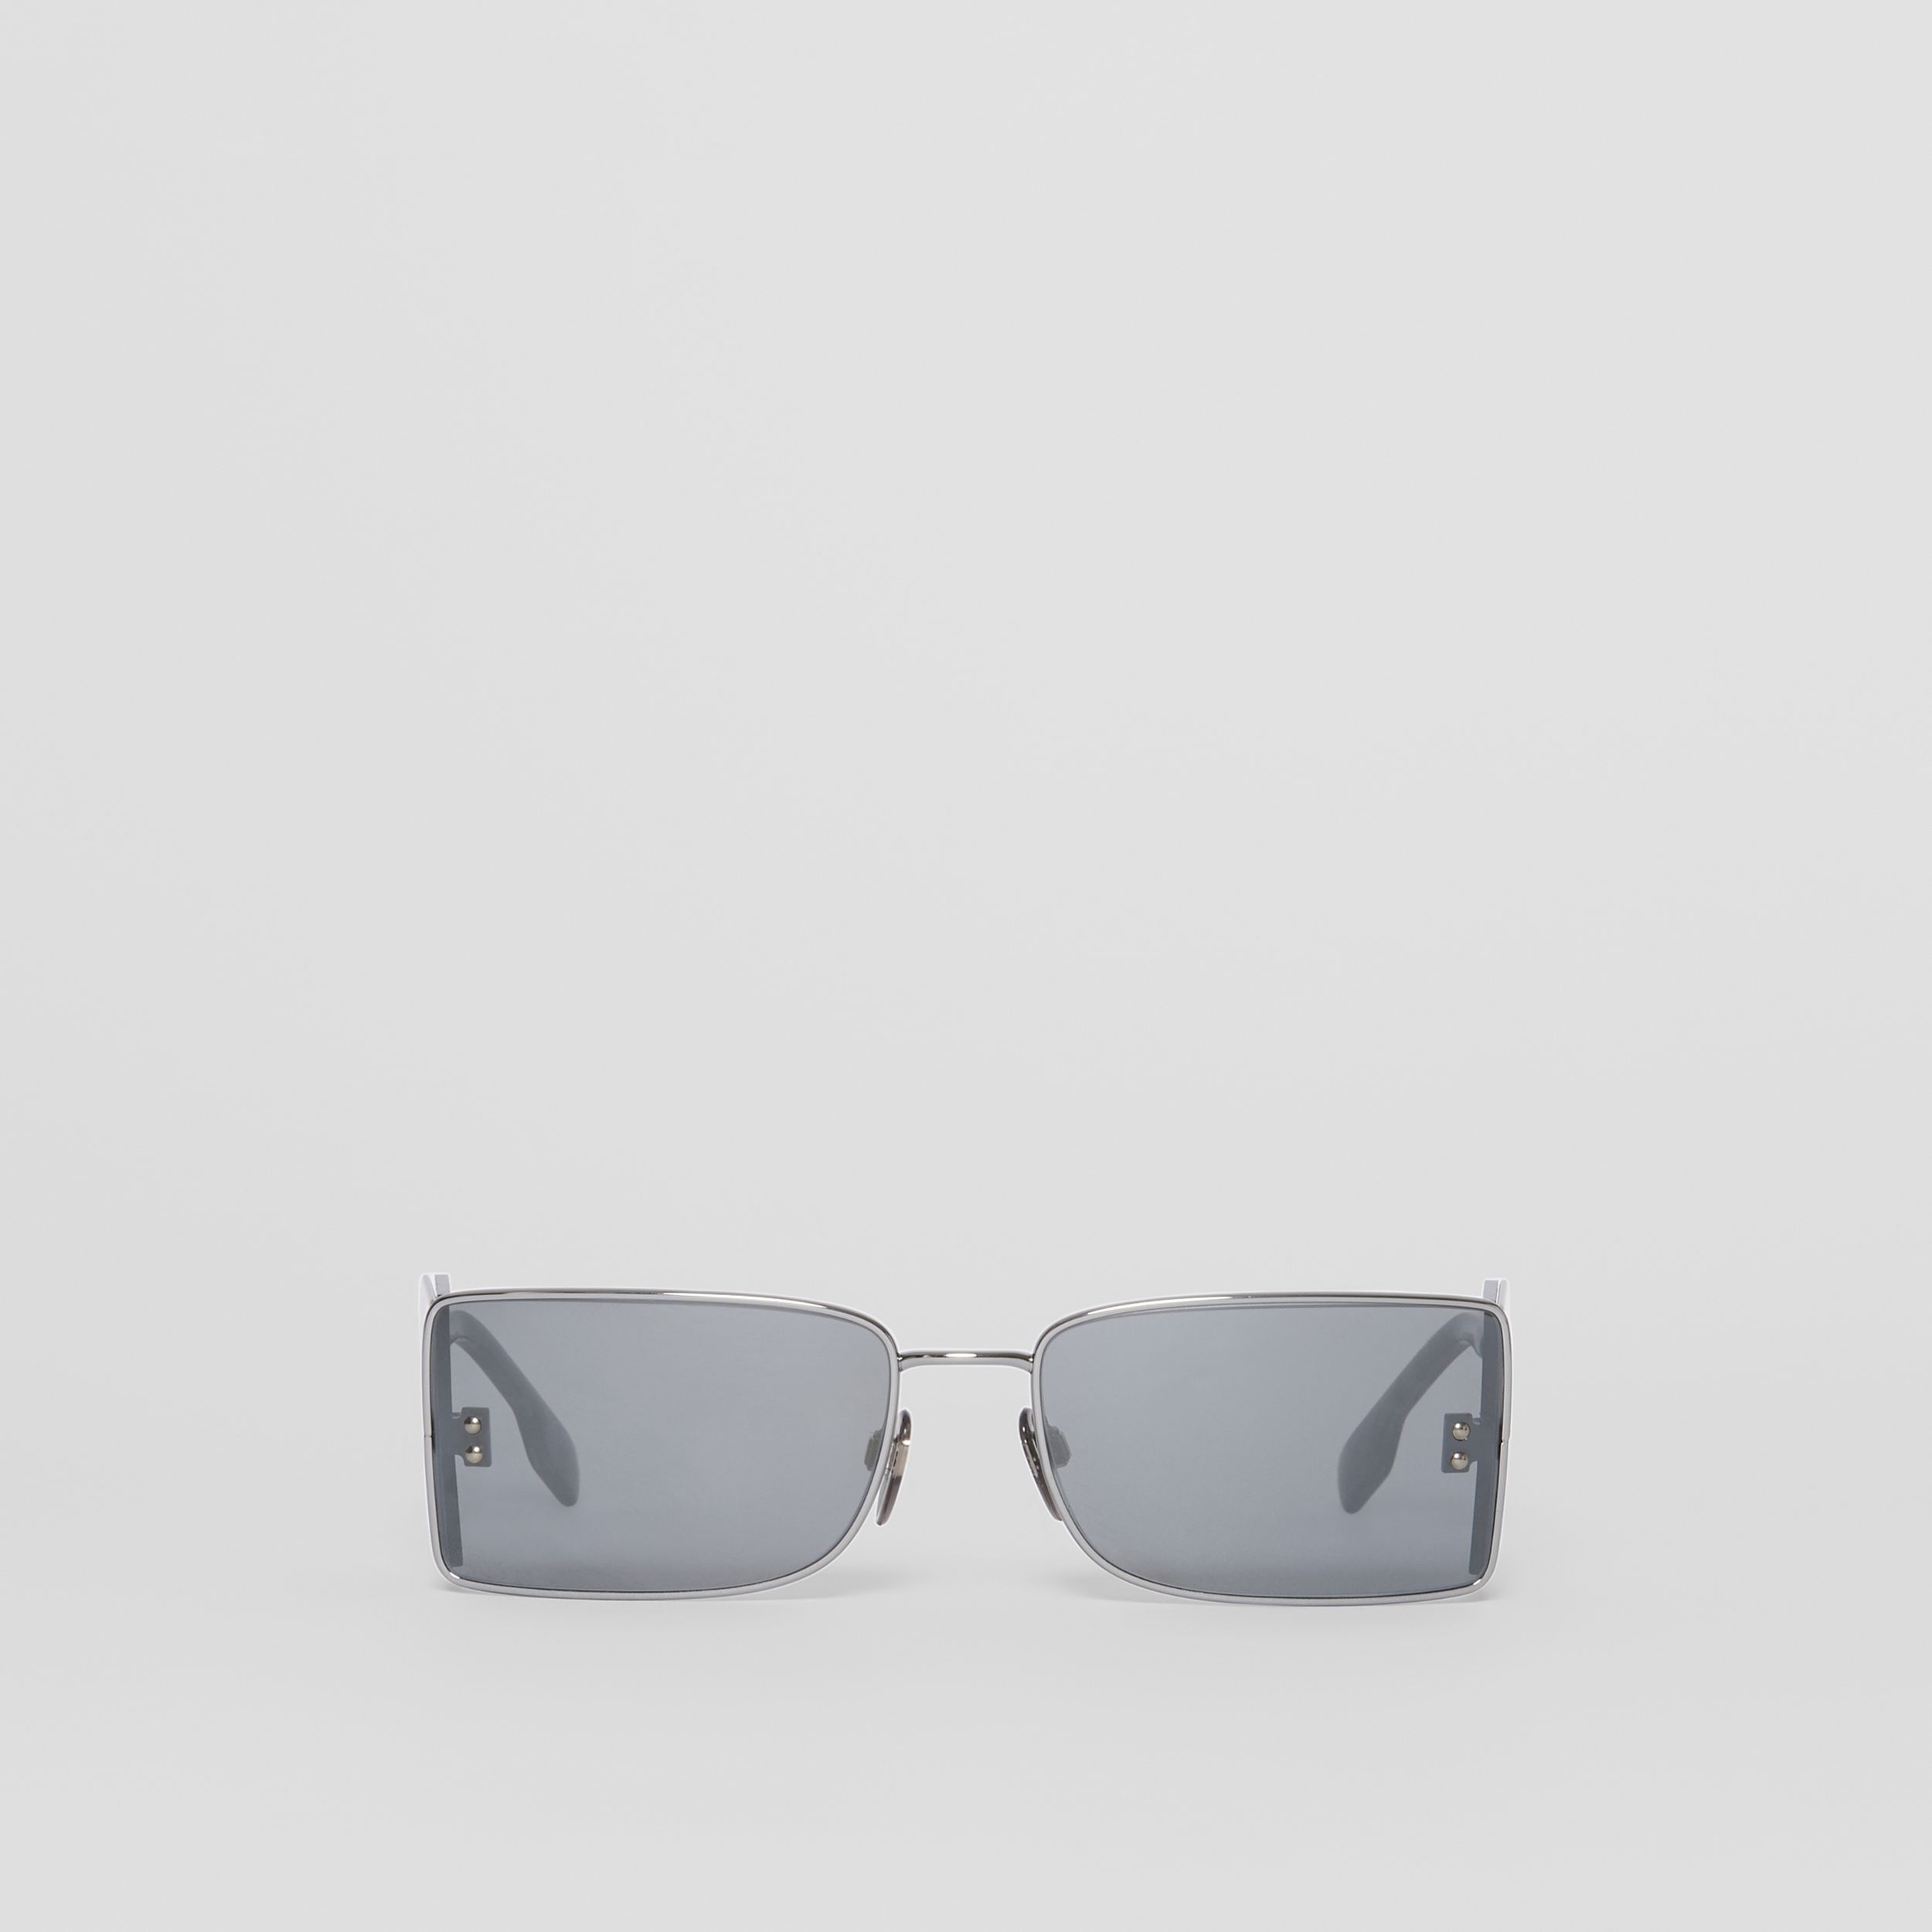 'B' Lens Detail Rectangular Frame Sunglasses in Gunmetal Grey | Burberry - 1